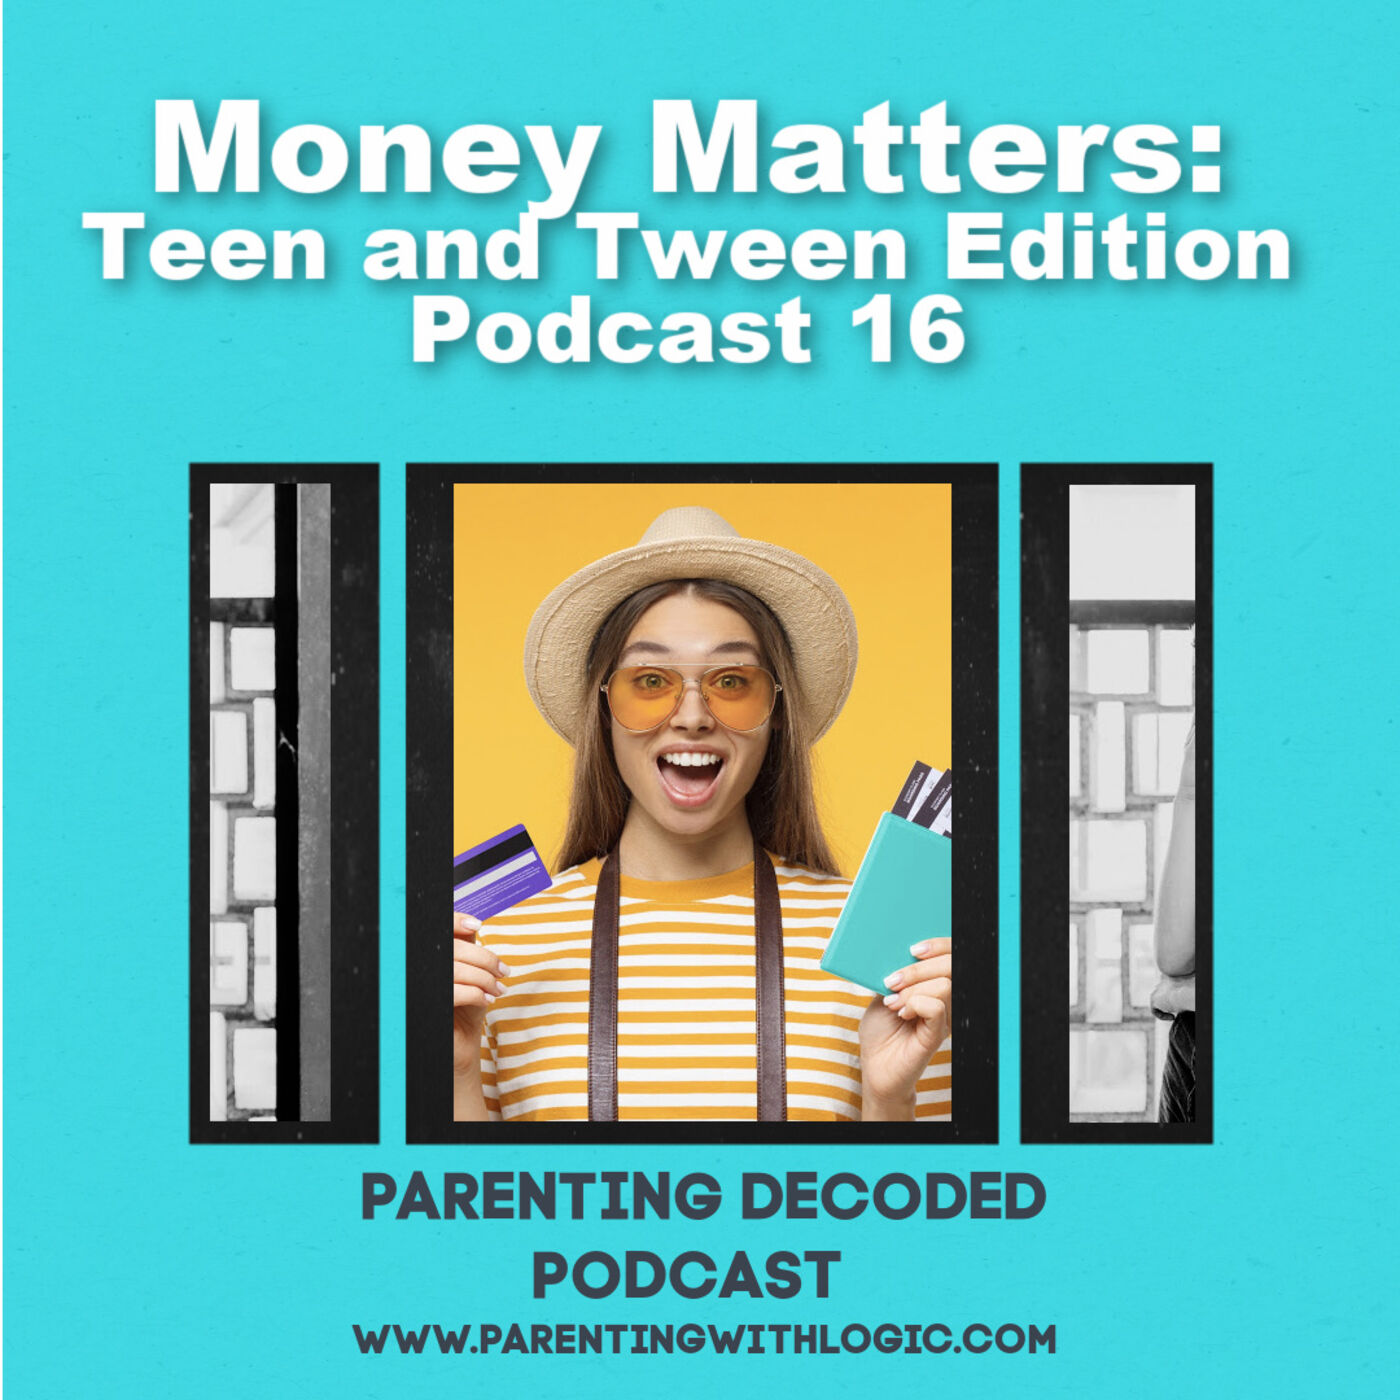 16 - Money Matters: Teen and Tween Edition